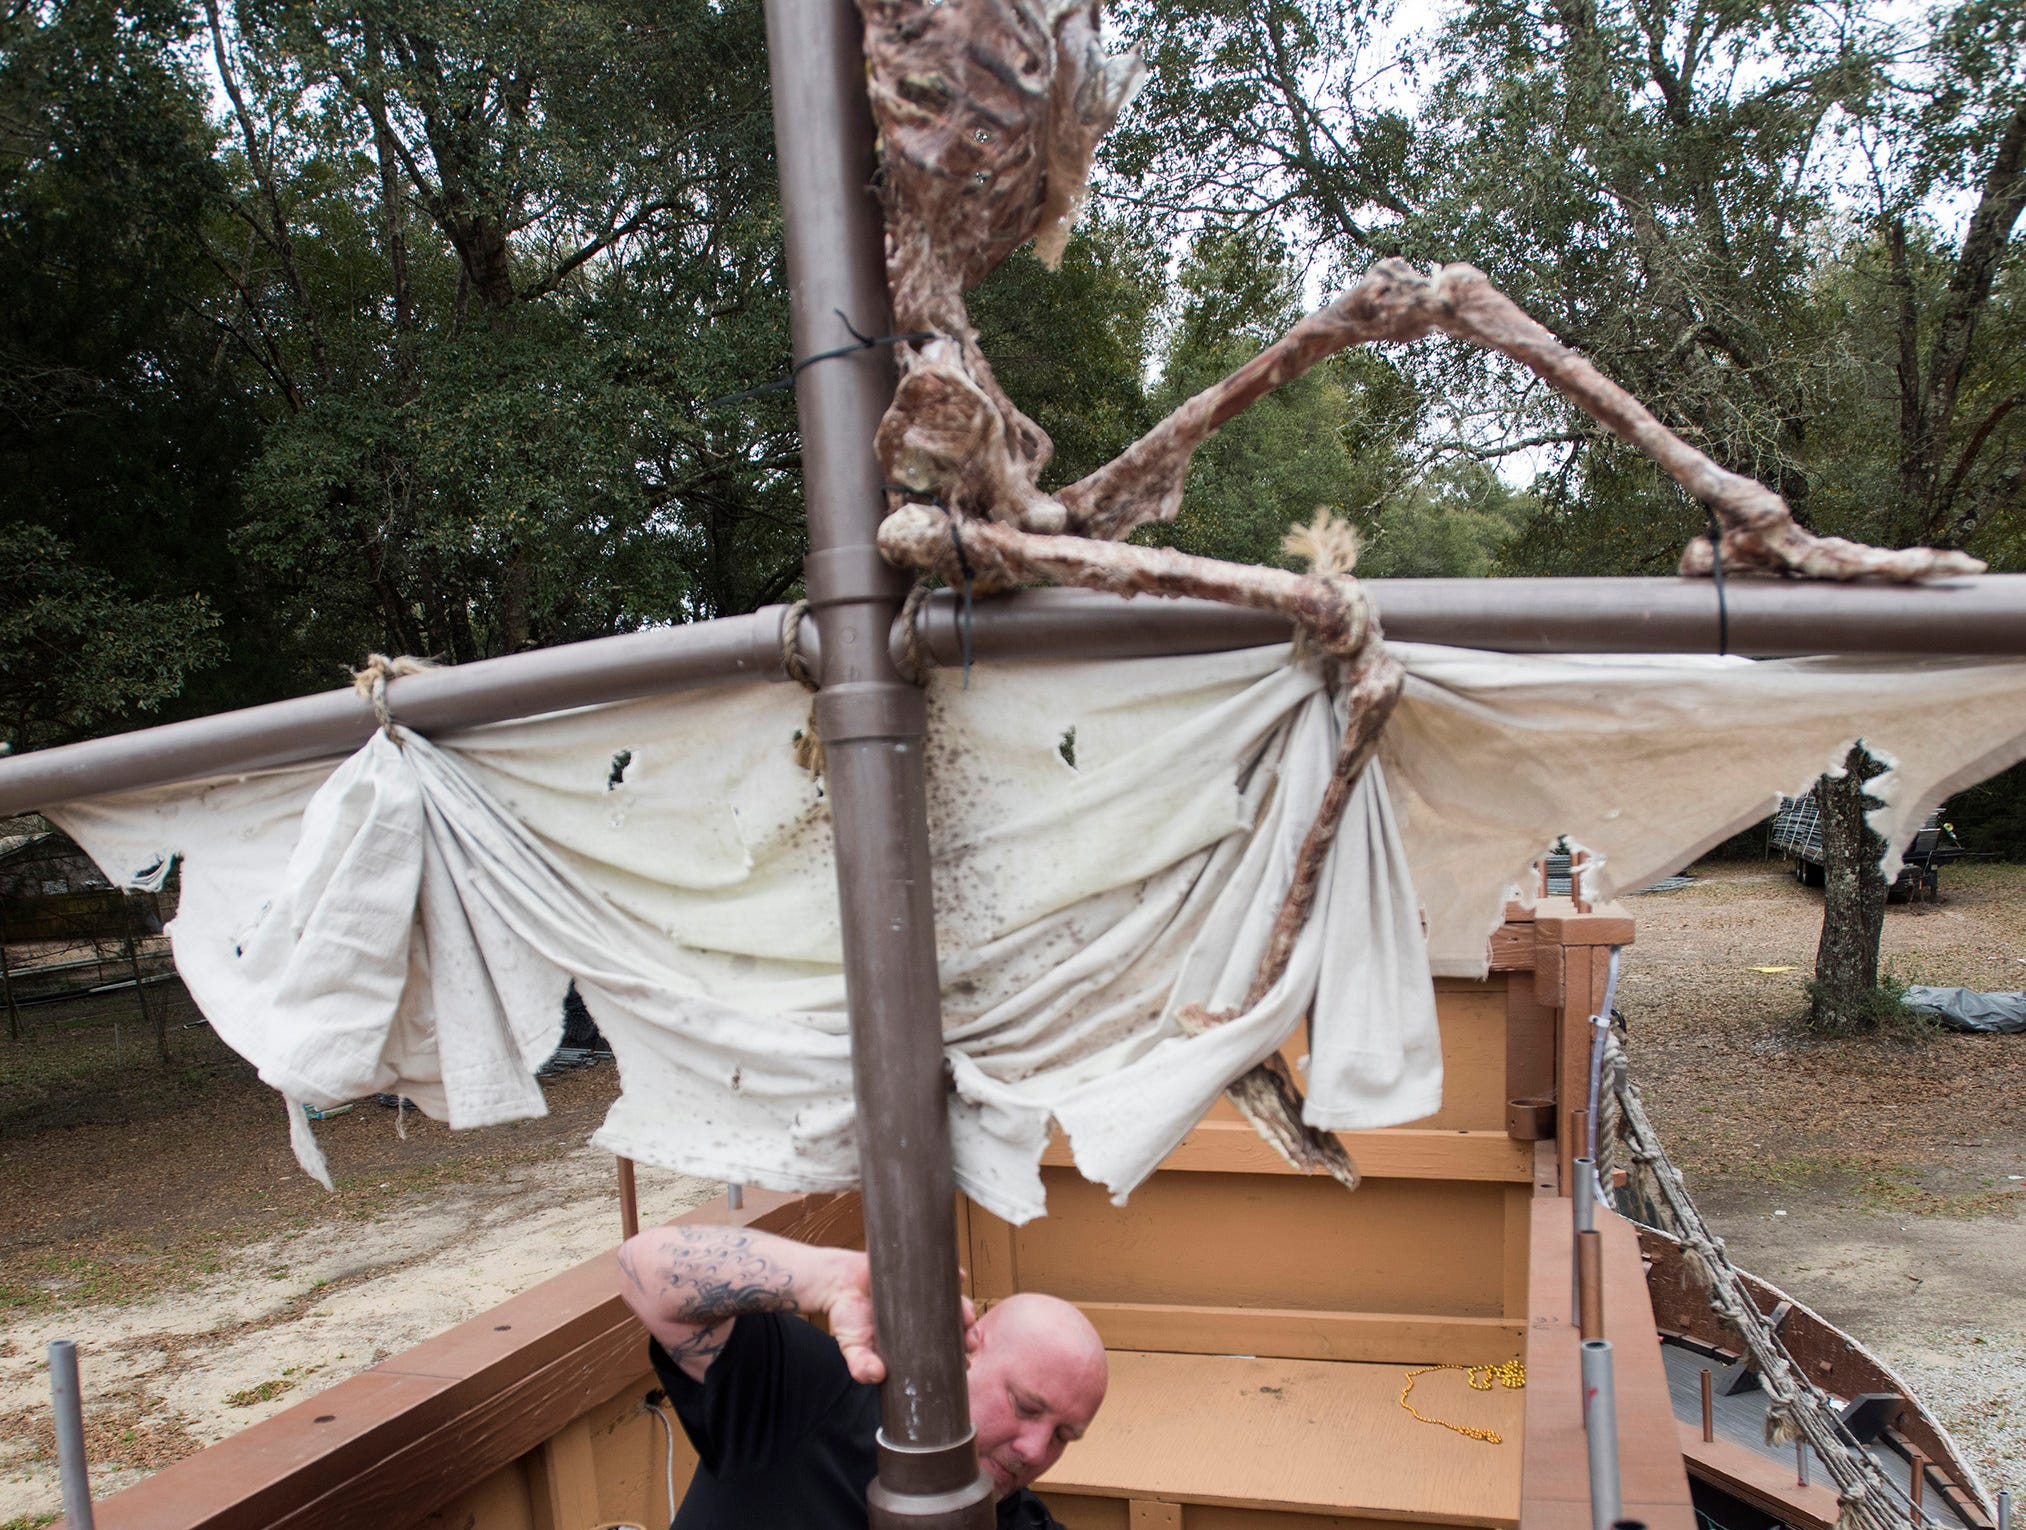 Patrick Fitzgerald, the president of the Krewe of Airship Pirates, gets the krewes' float ready for the upcoming Mardi Gras season on Friday, Feb 8, 2019. The Krewe of Airship Pirates float will take to the streets of Milton for the first time next weekend.